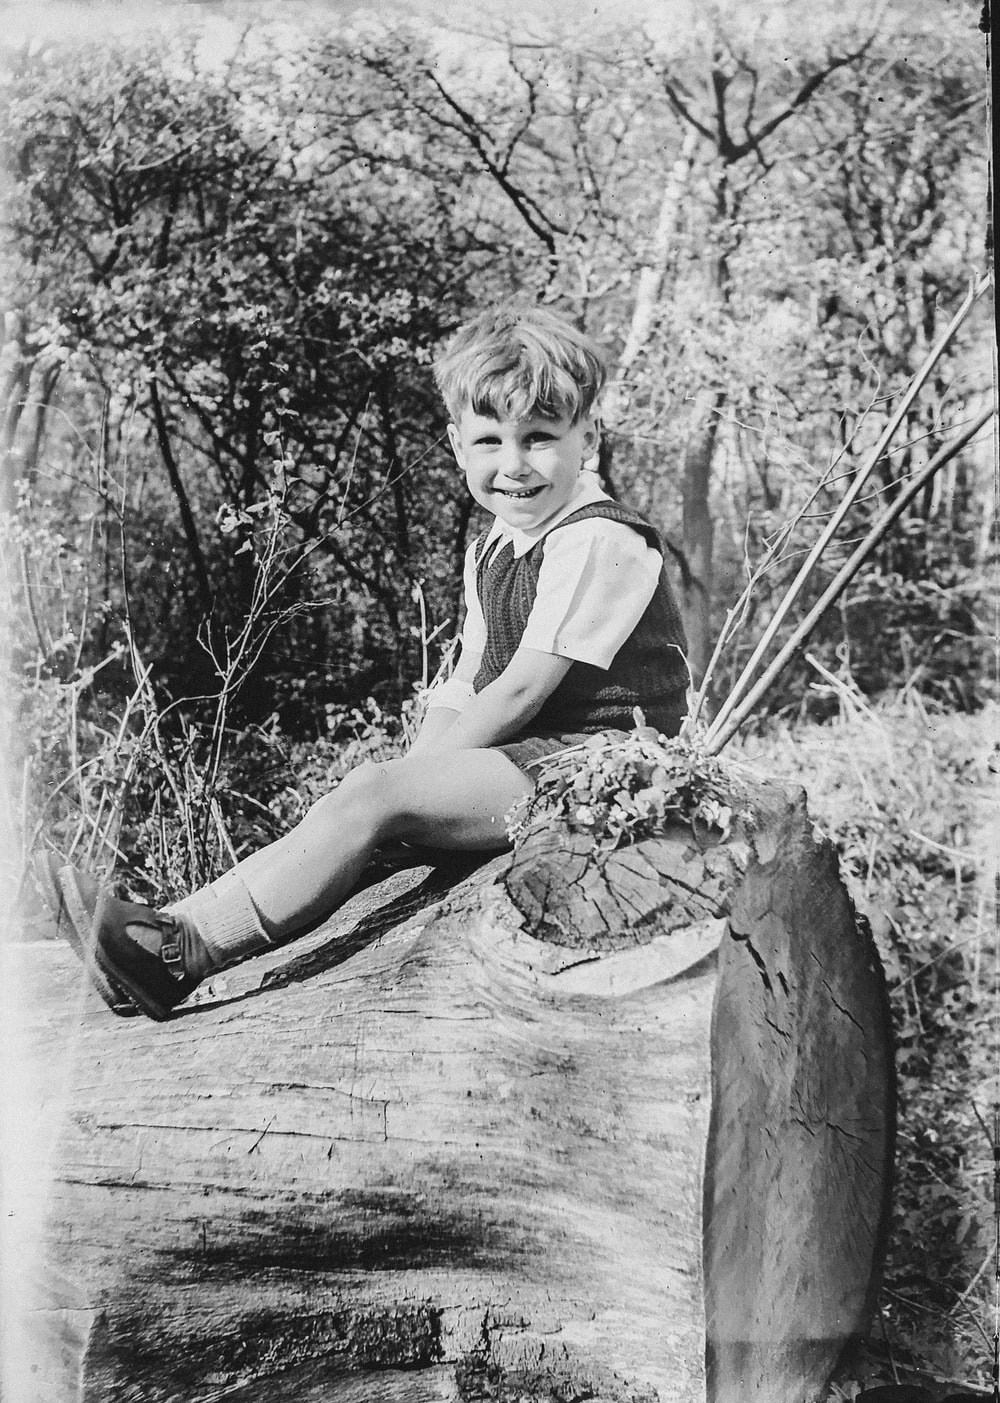 grayscale photo of boy on tree log